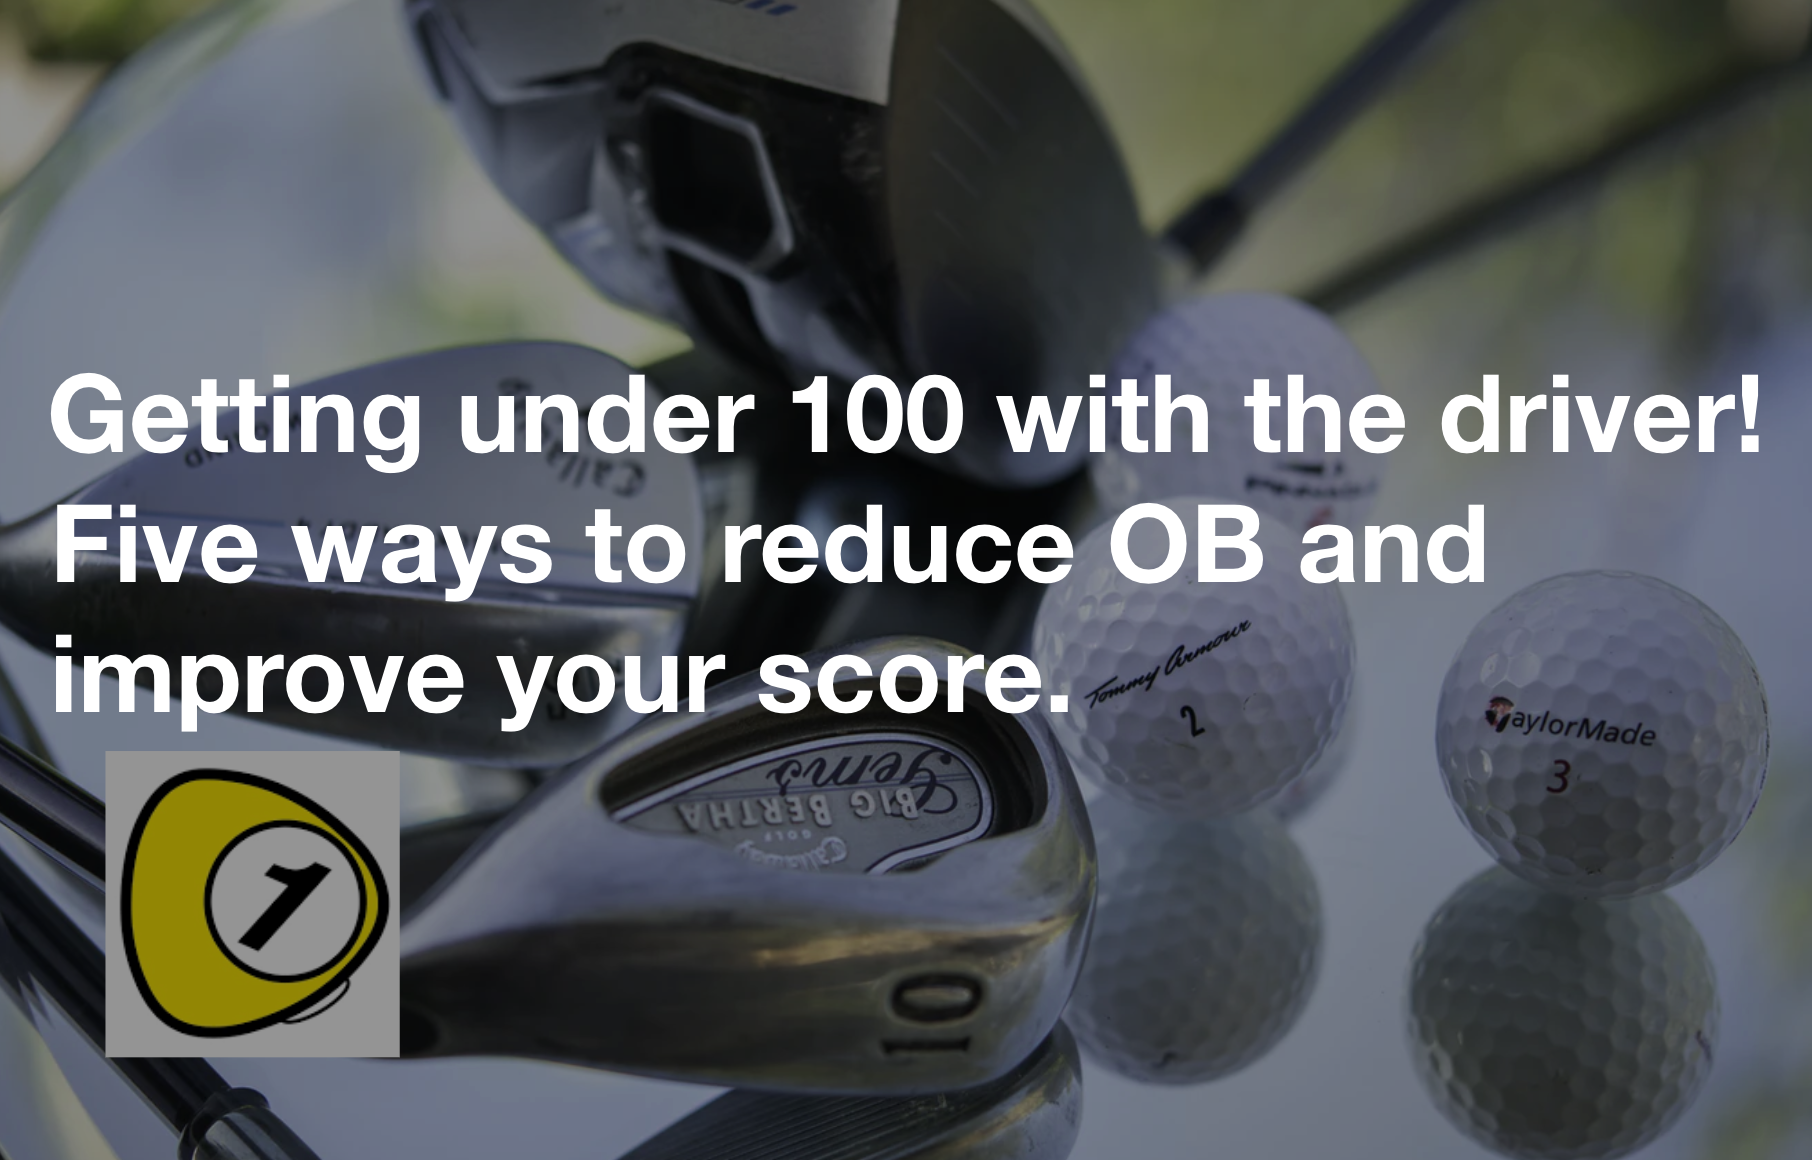 golfScoreCounterDotcom_Getting under 100 with the driver! Five ways to reduce OB and improve your score.